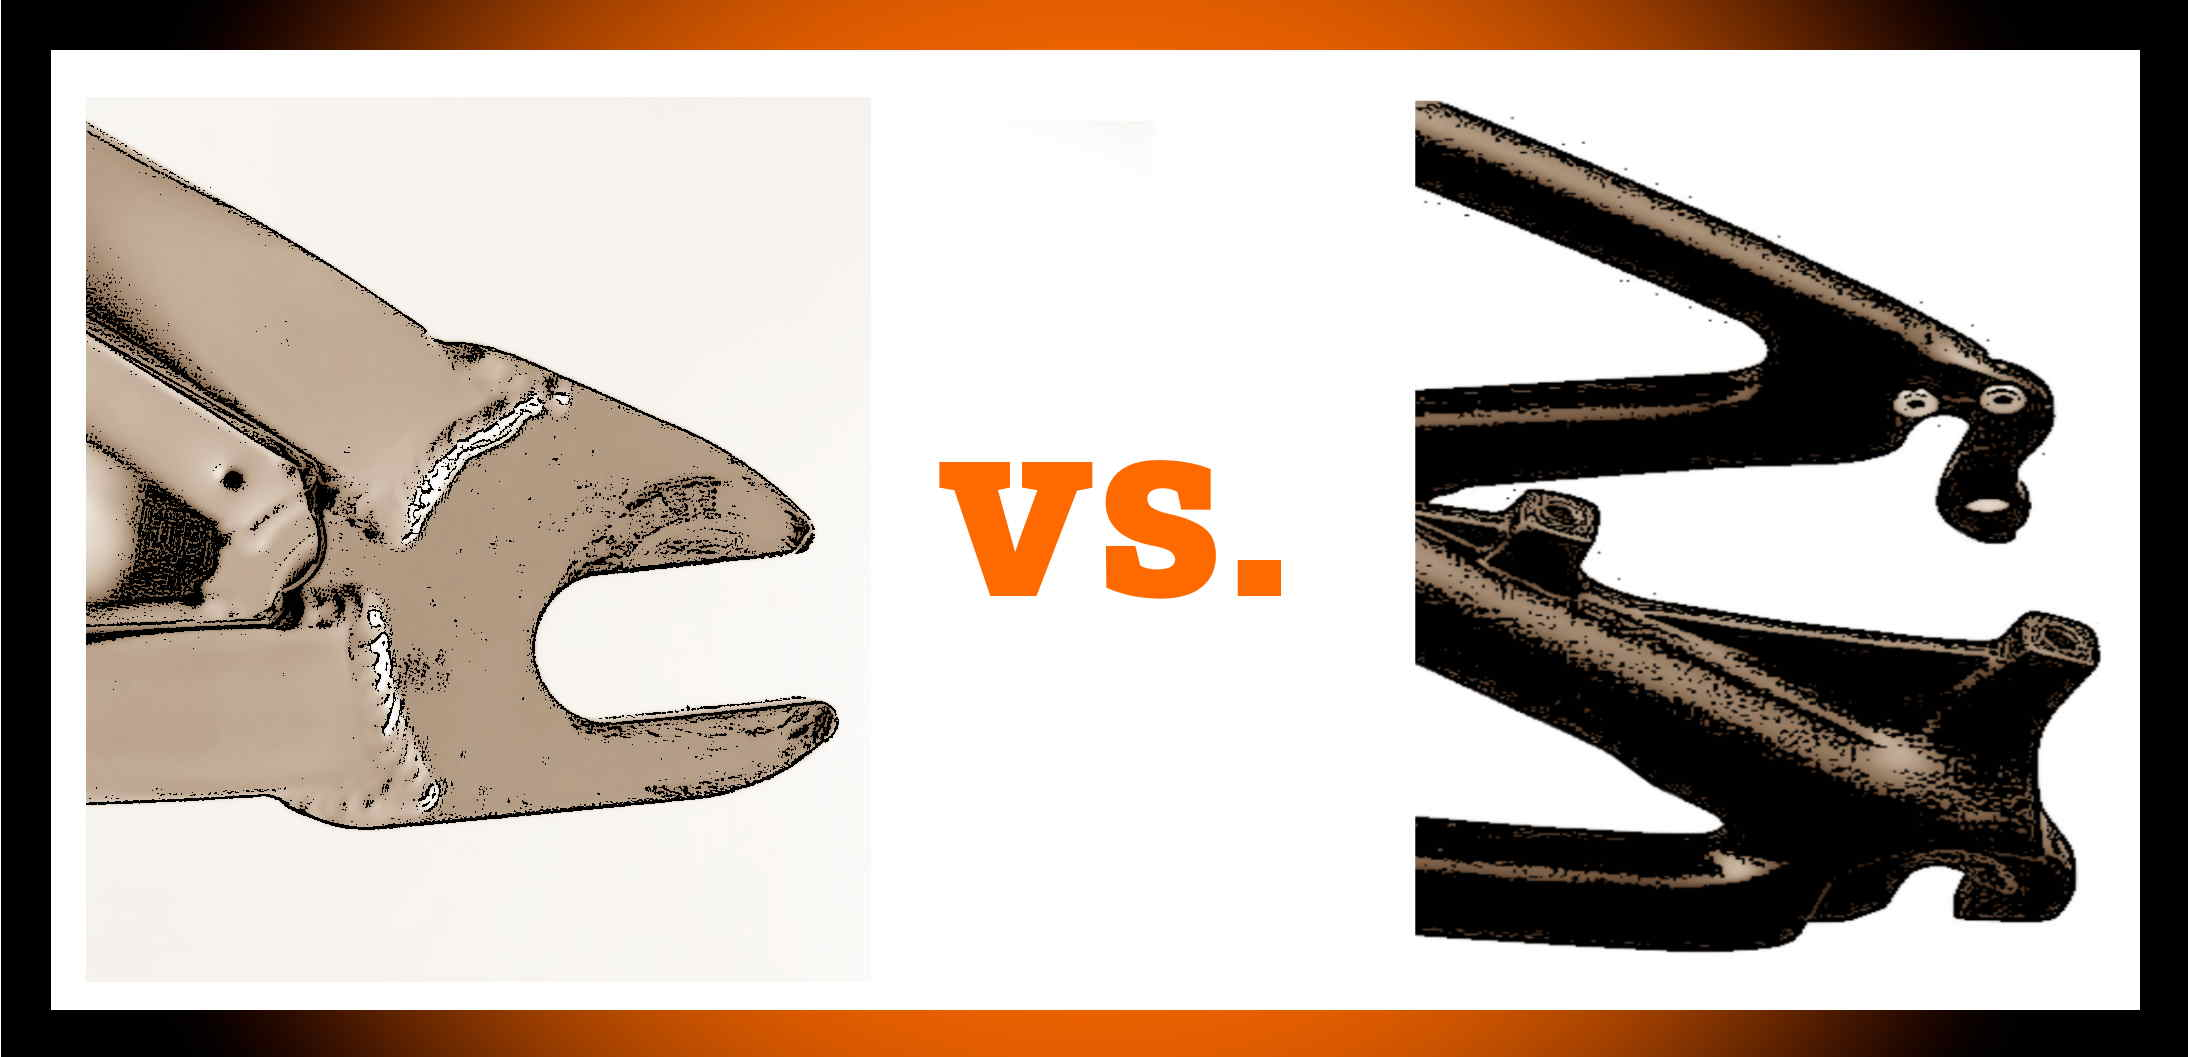 Read more about the article Horizontal vs. Vertical Dropouts (Full Comparison)